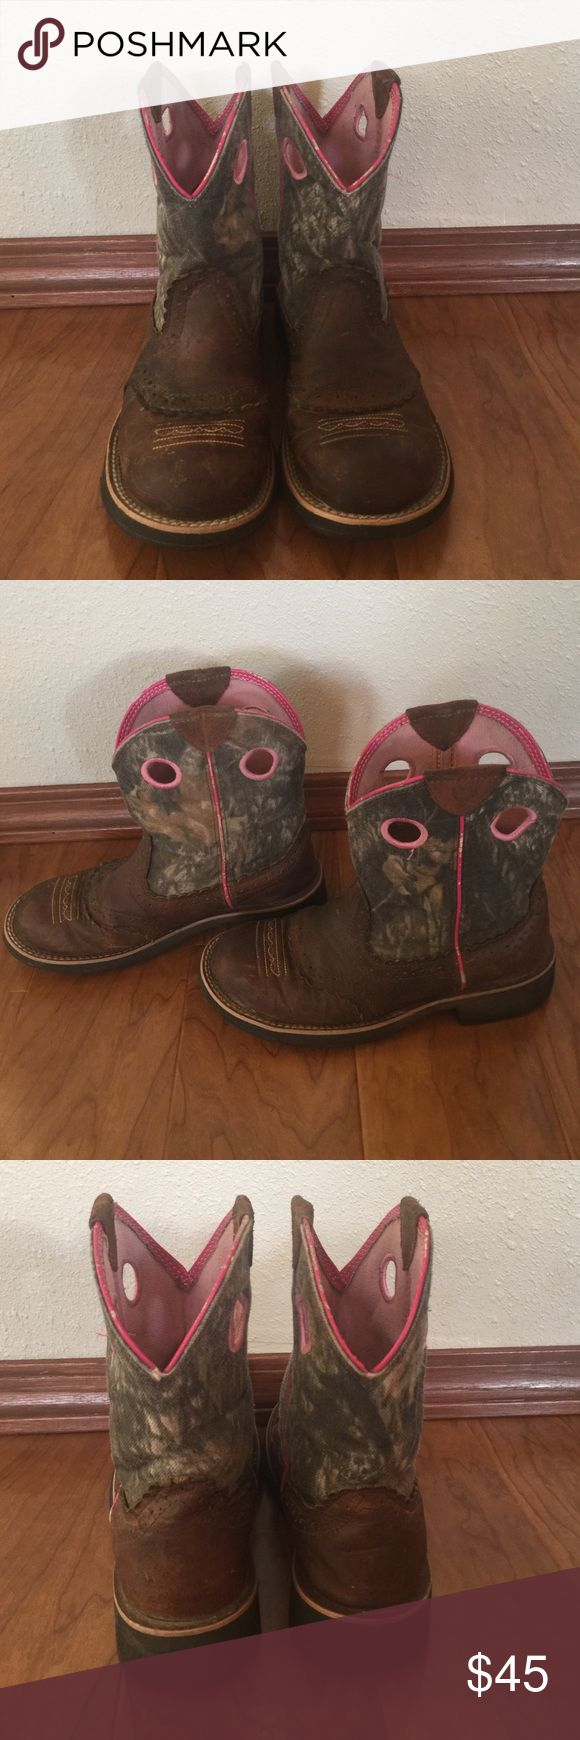 Camo cowgirl boots💕 Super cute camo and pink Ariat cowgirl boots just normal were and scuffs, super cute for around the farm and fashion they are a women's 6!🎀 Ariat Shoes